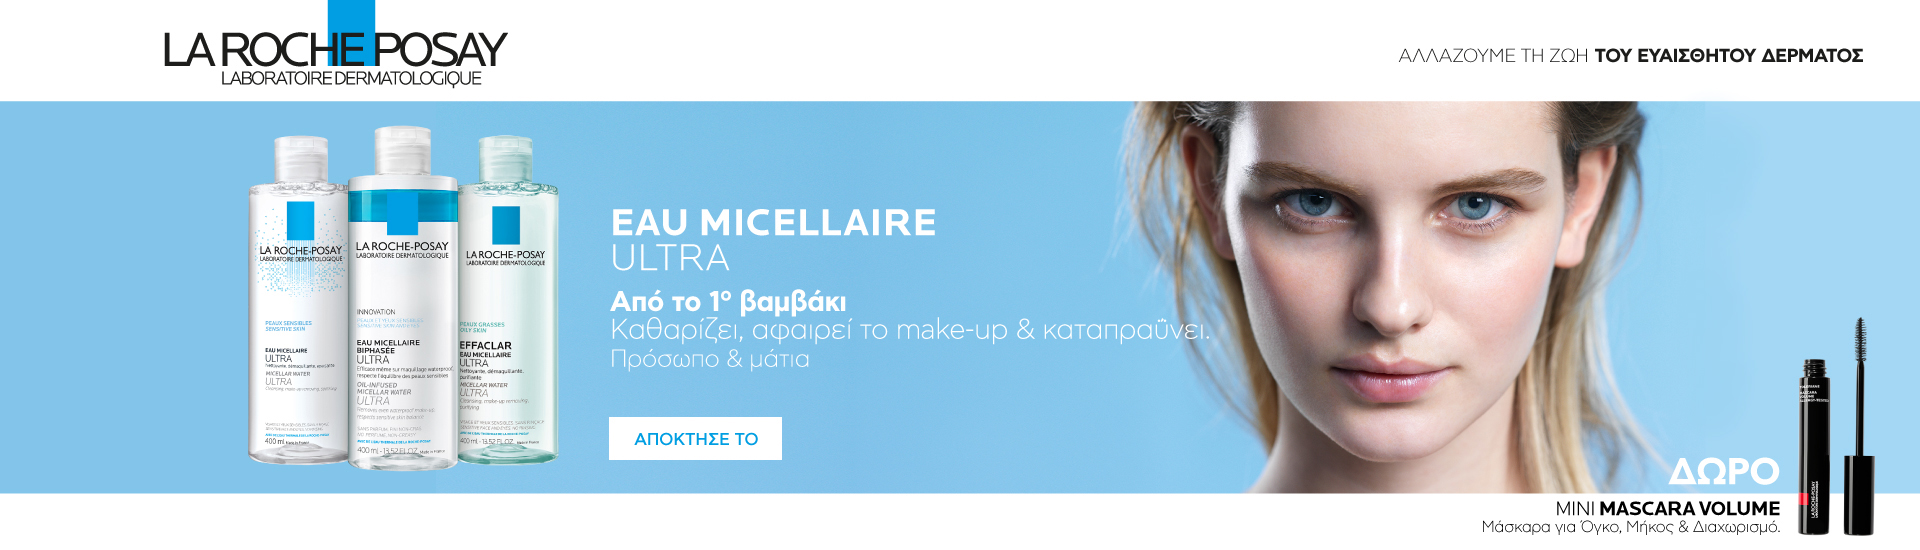 La Roche Posay Face Cleansing